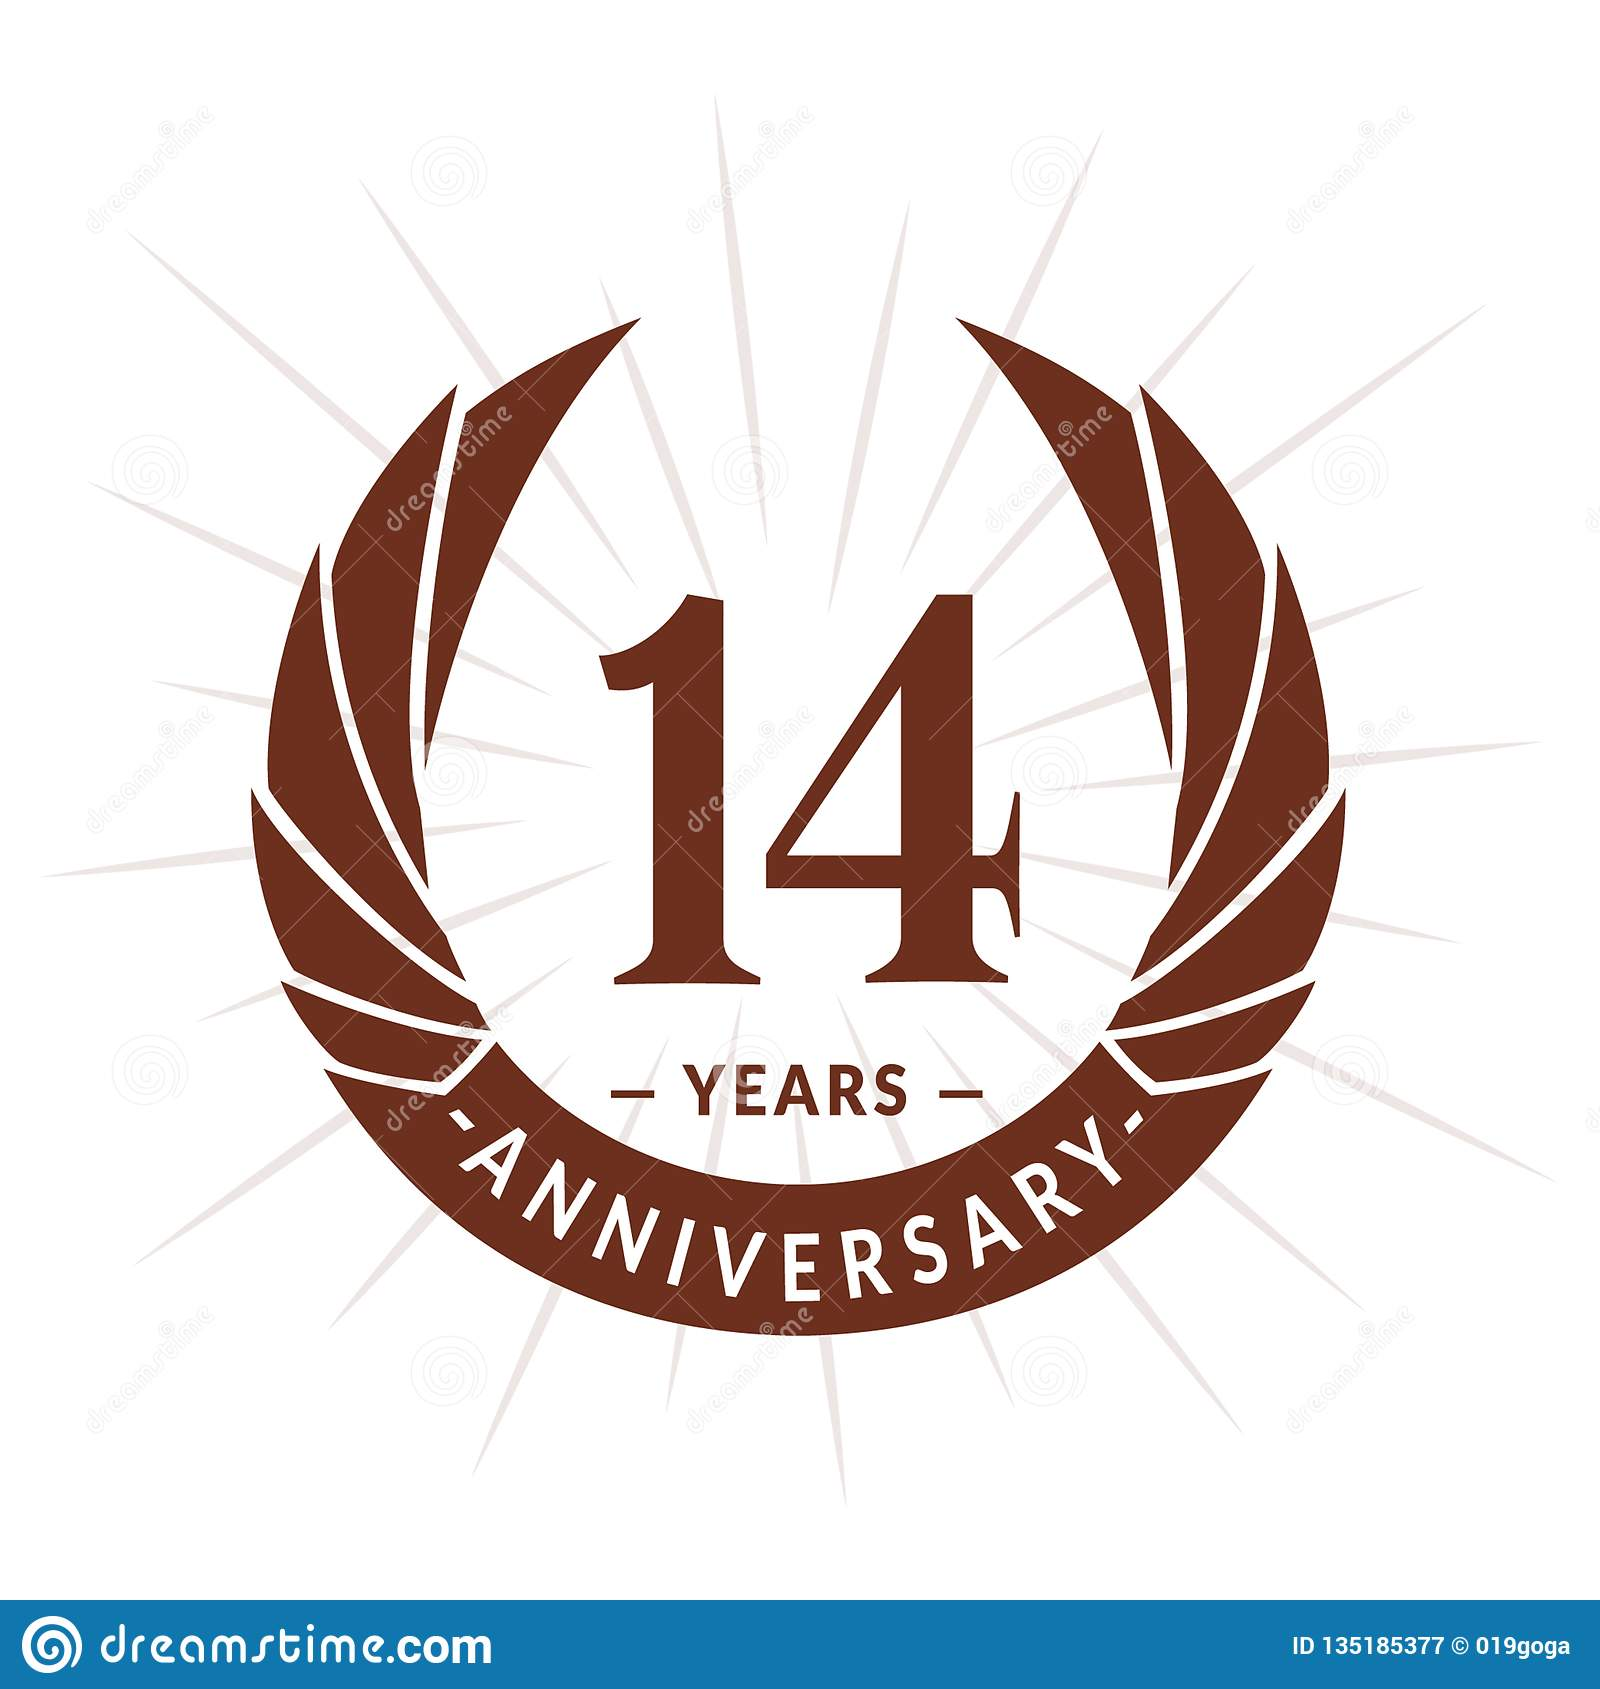 14 years anniversary design template. Elegant anniversary logo design. Fourteen years logo.